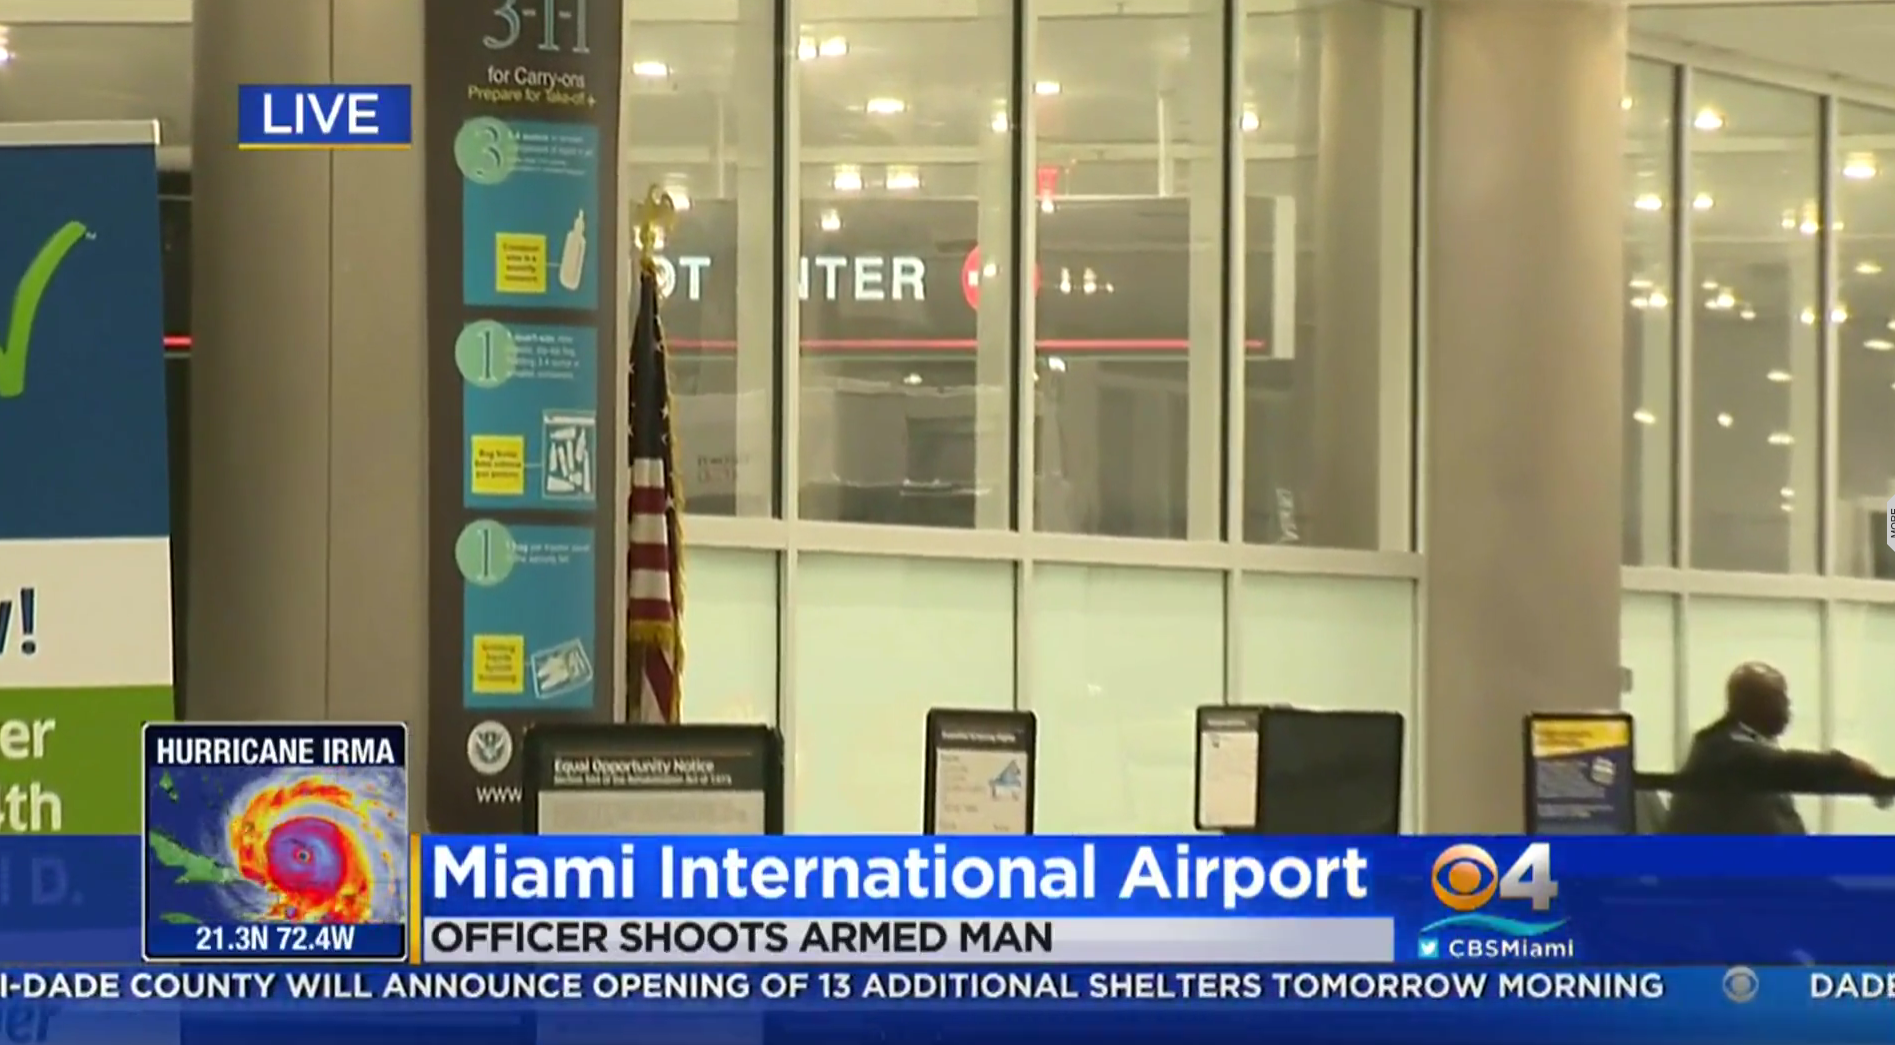 Created At 2017 09 08 1214 Reel Pioneer Masterpiece Mp 2000 Police Shot A Man Who Wielded Knife And Tried To Get Into Miami Airport Terminal From Runway On Thursday Night Prompting The Closure Of Busy